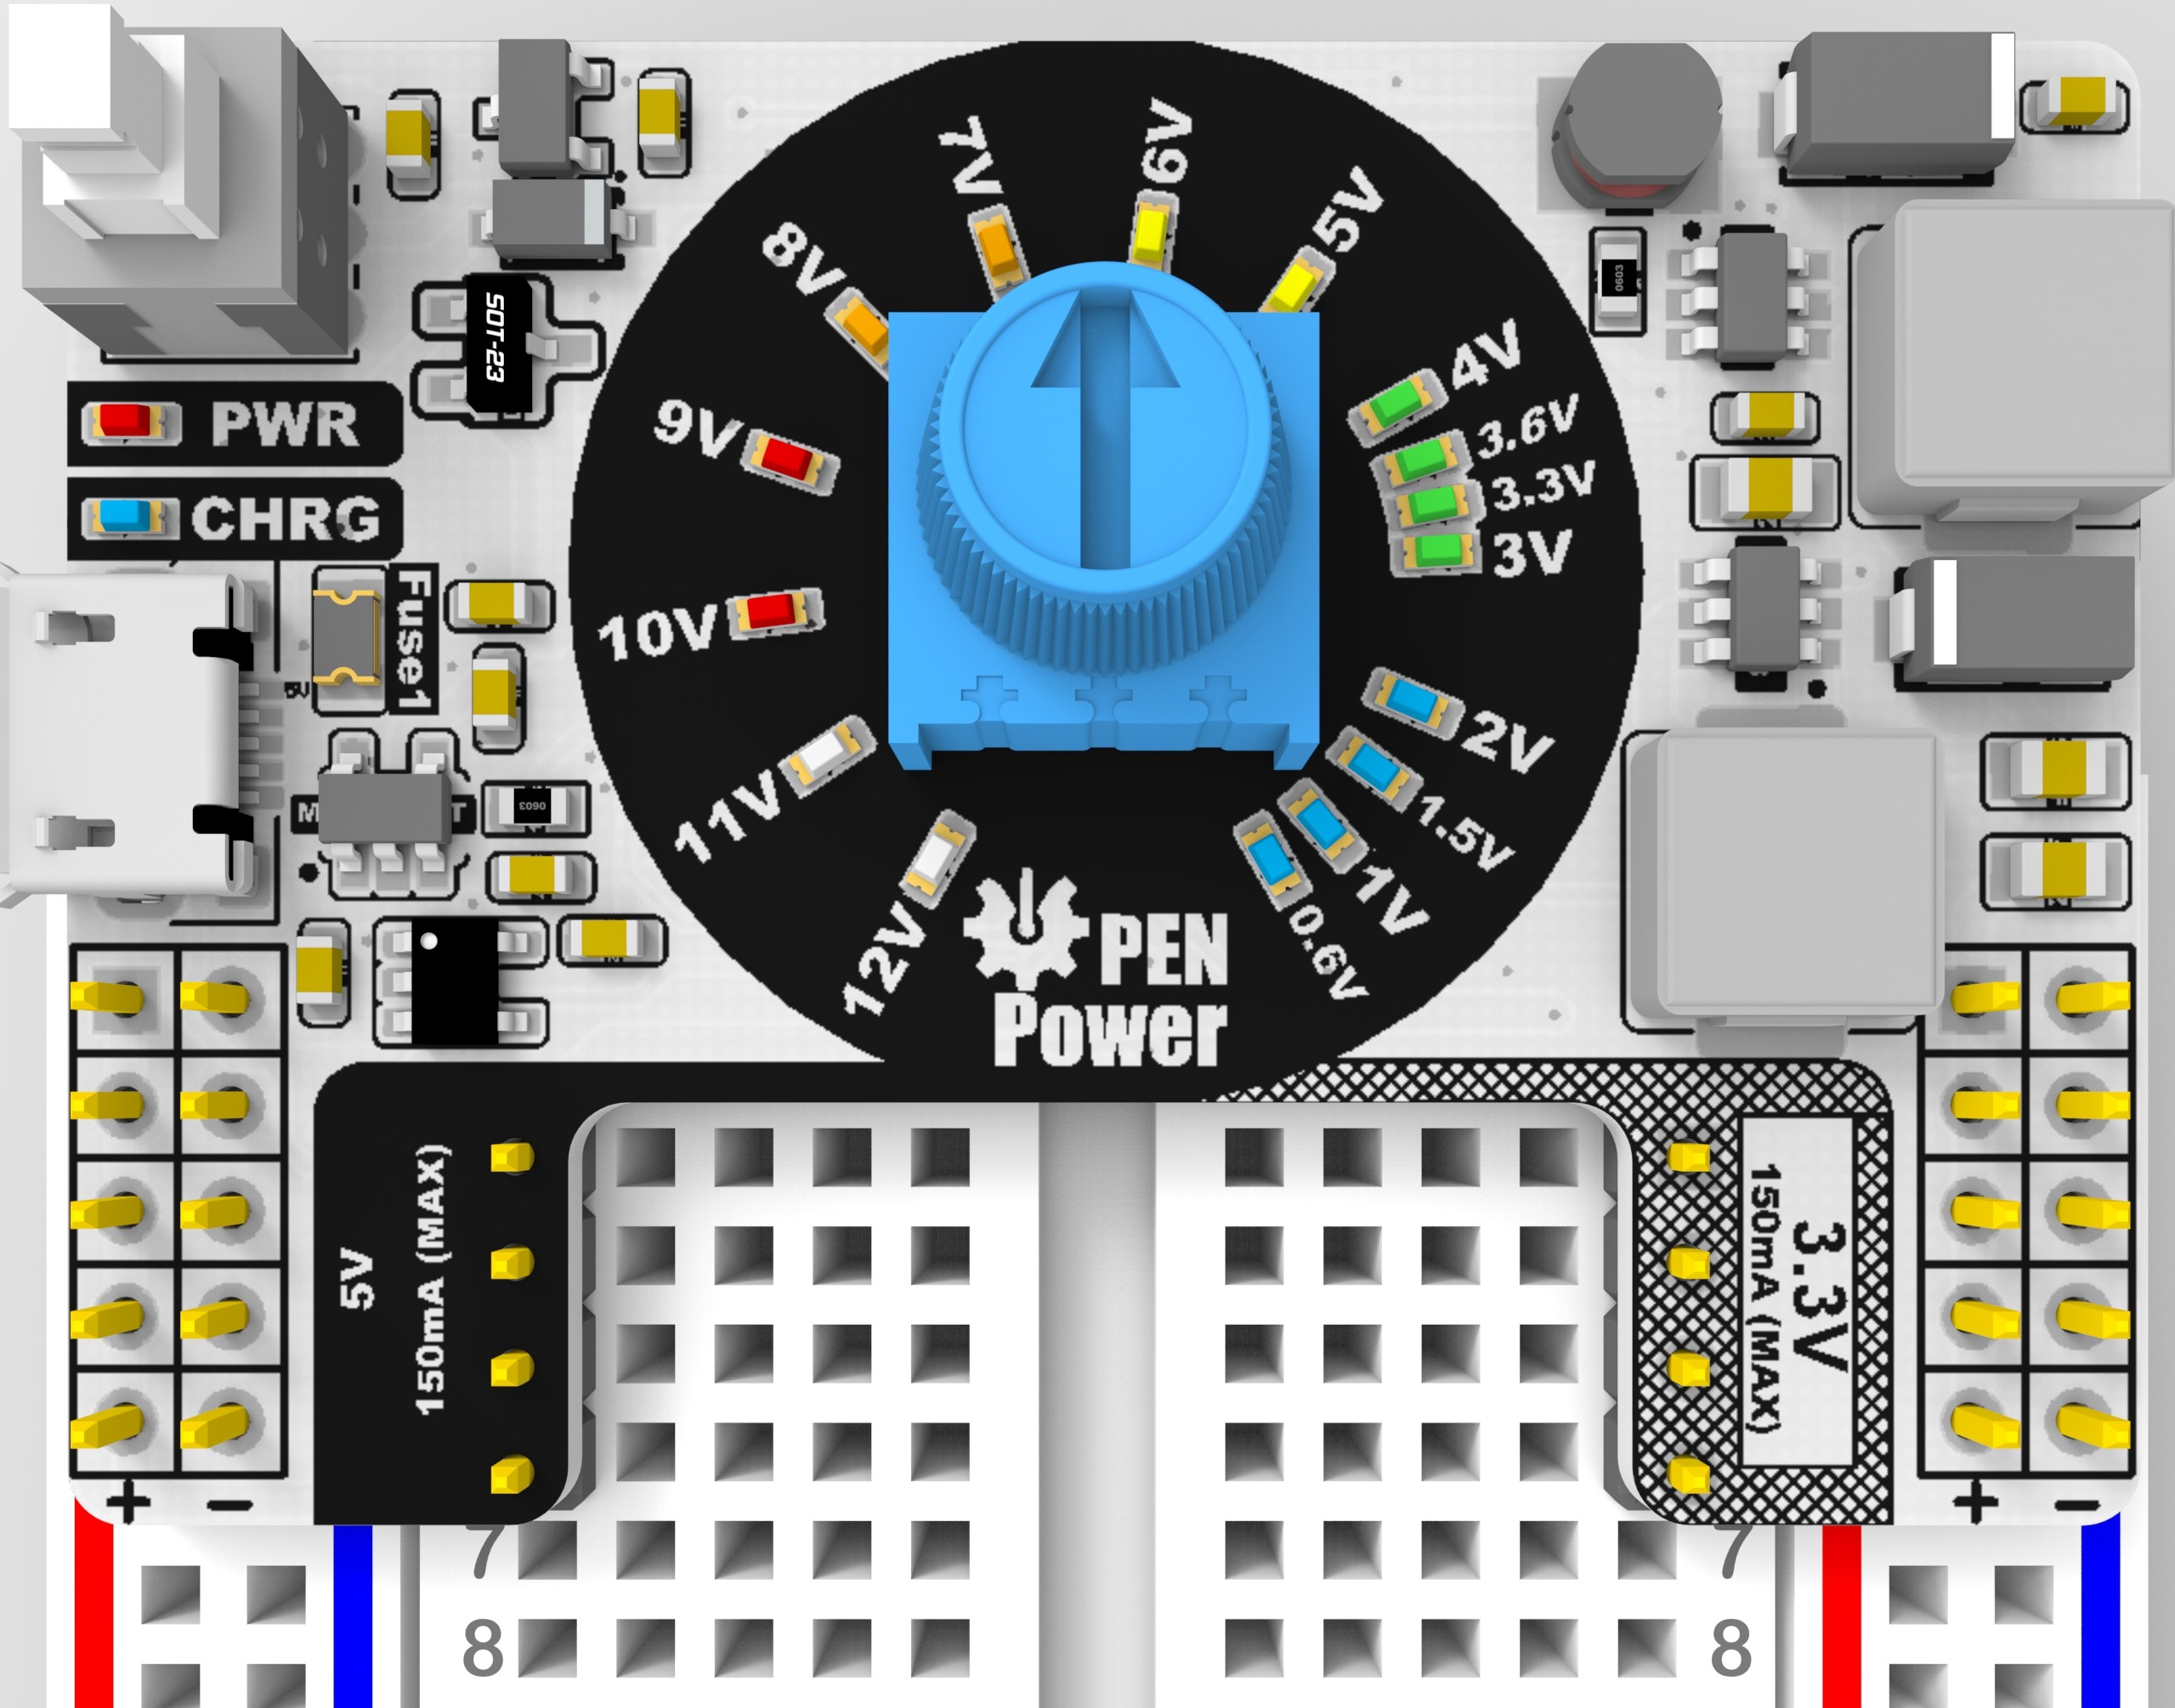 Click The Link To See The Full Circuit Schematic Gif Image Opens In